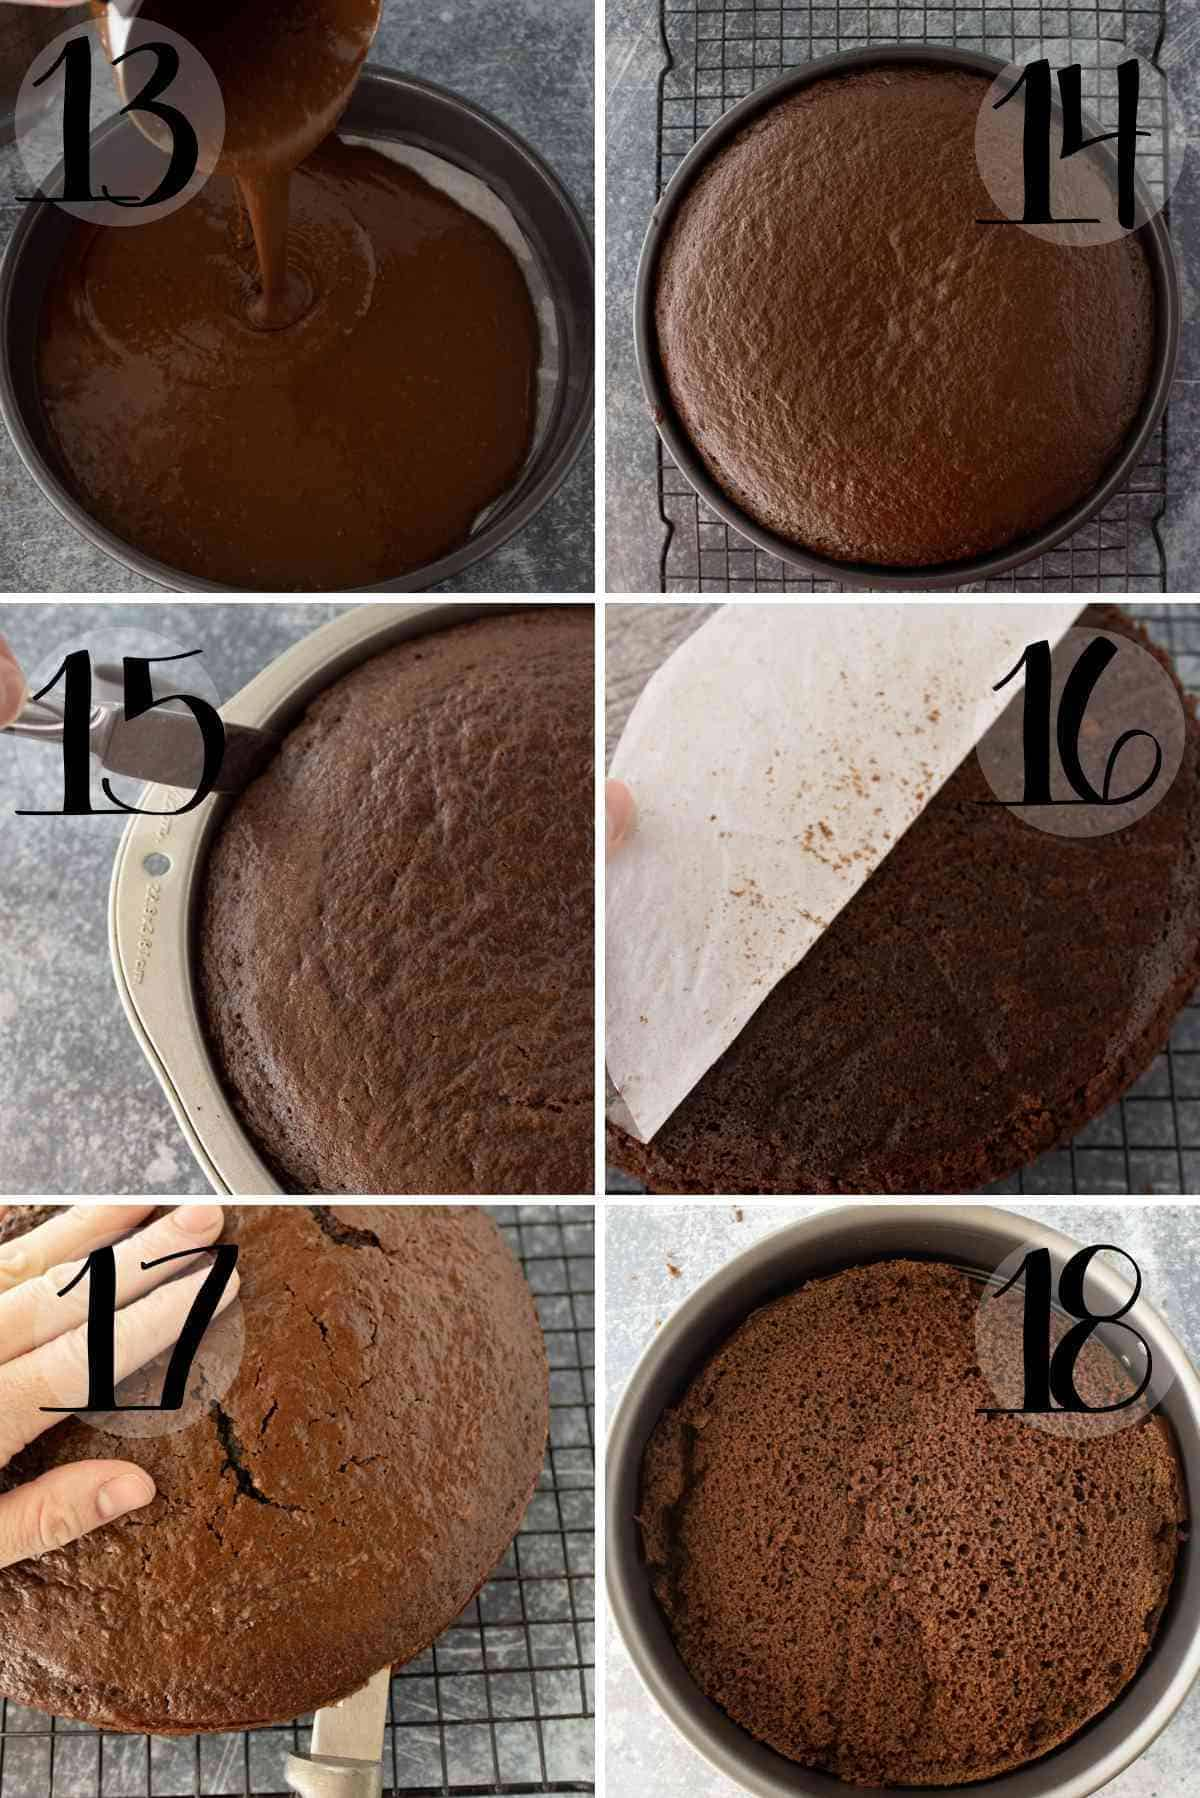 Pour the batter, bake, cool, level the top and place in a springform pan.